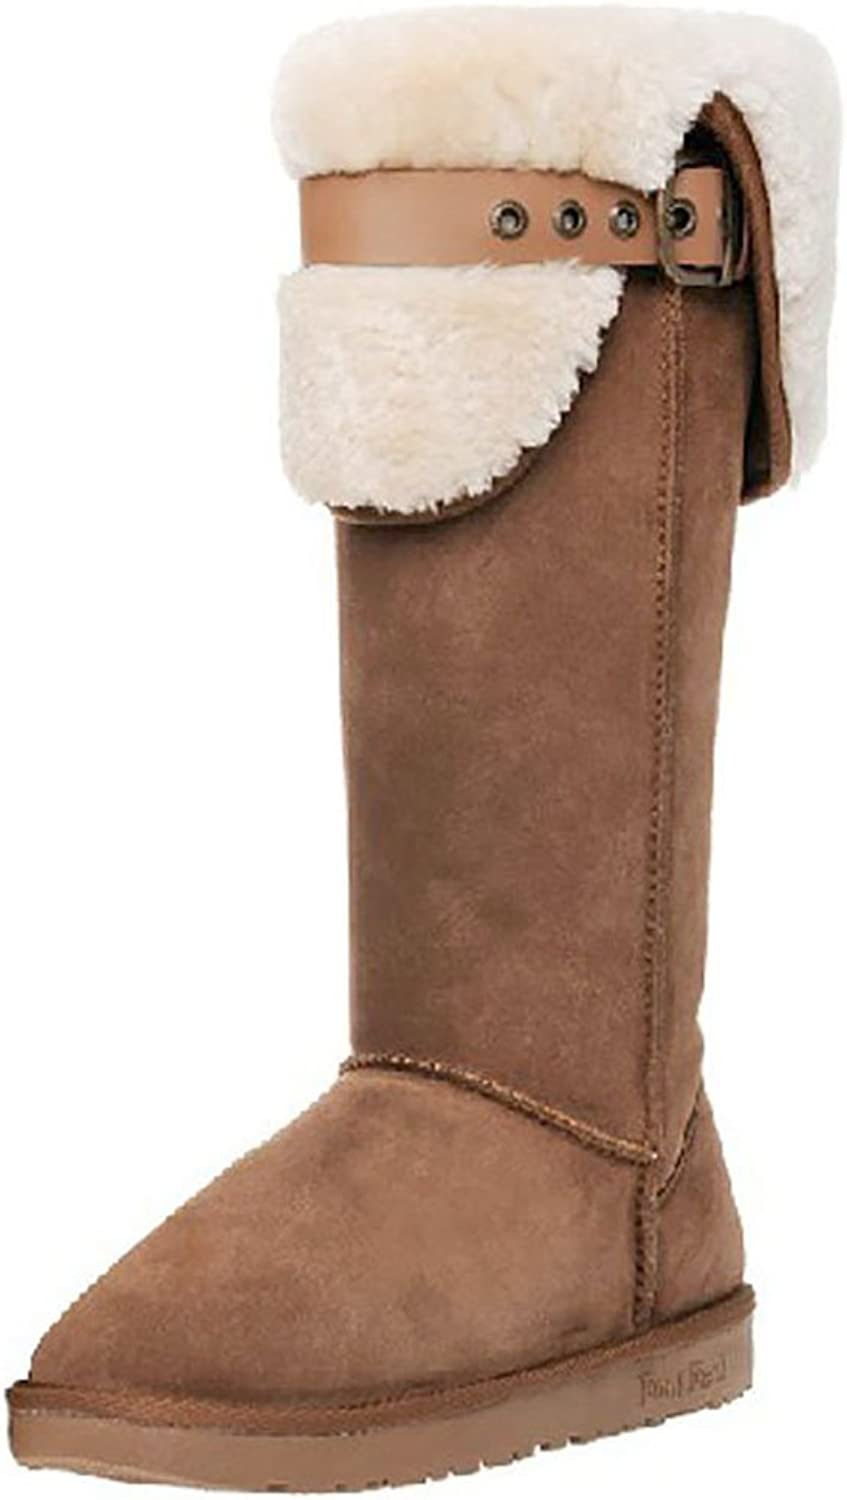 CORK Women's Warm Snow Boots Bow Tall Leather Fur